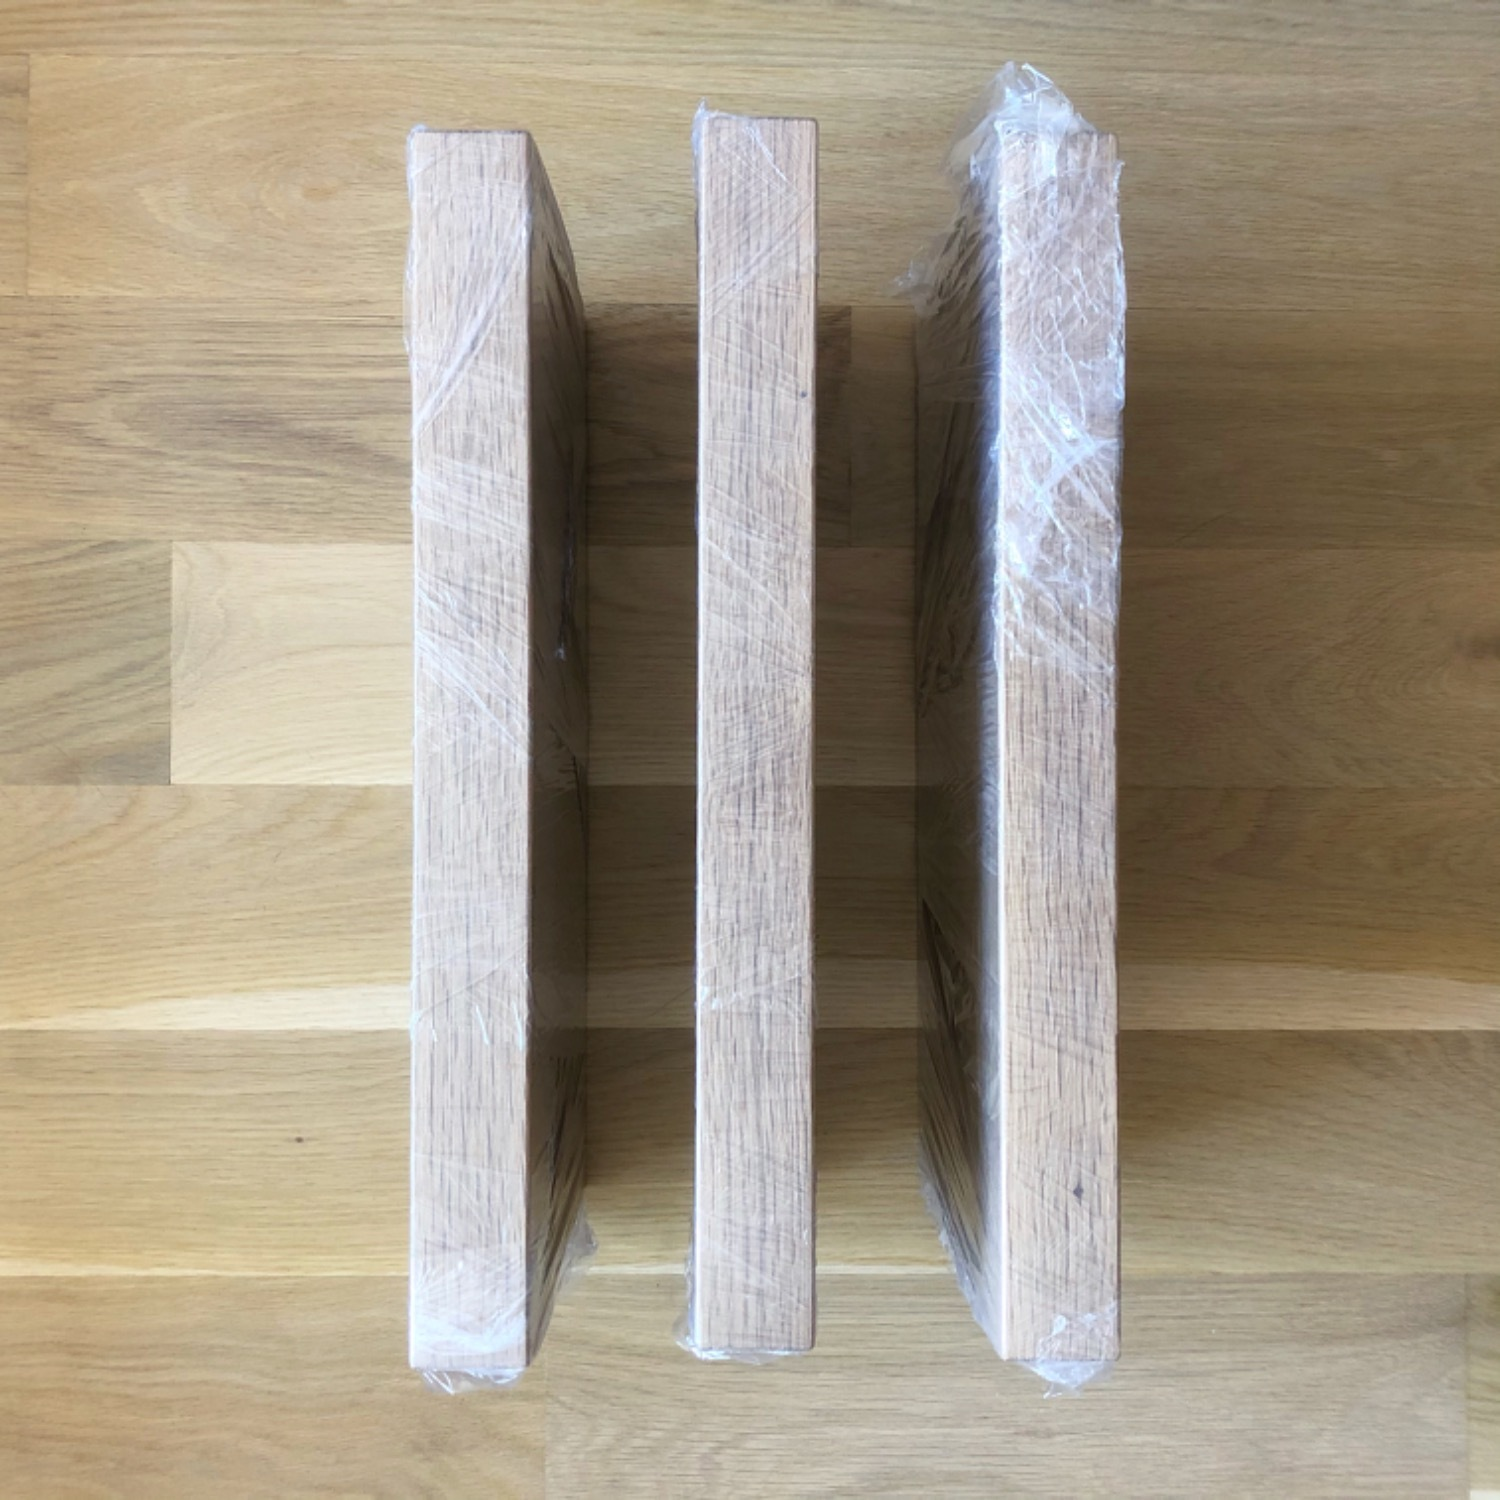 Solid Natural Oak Floating Shelves - image-8